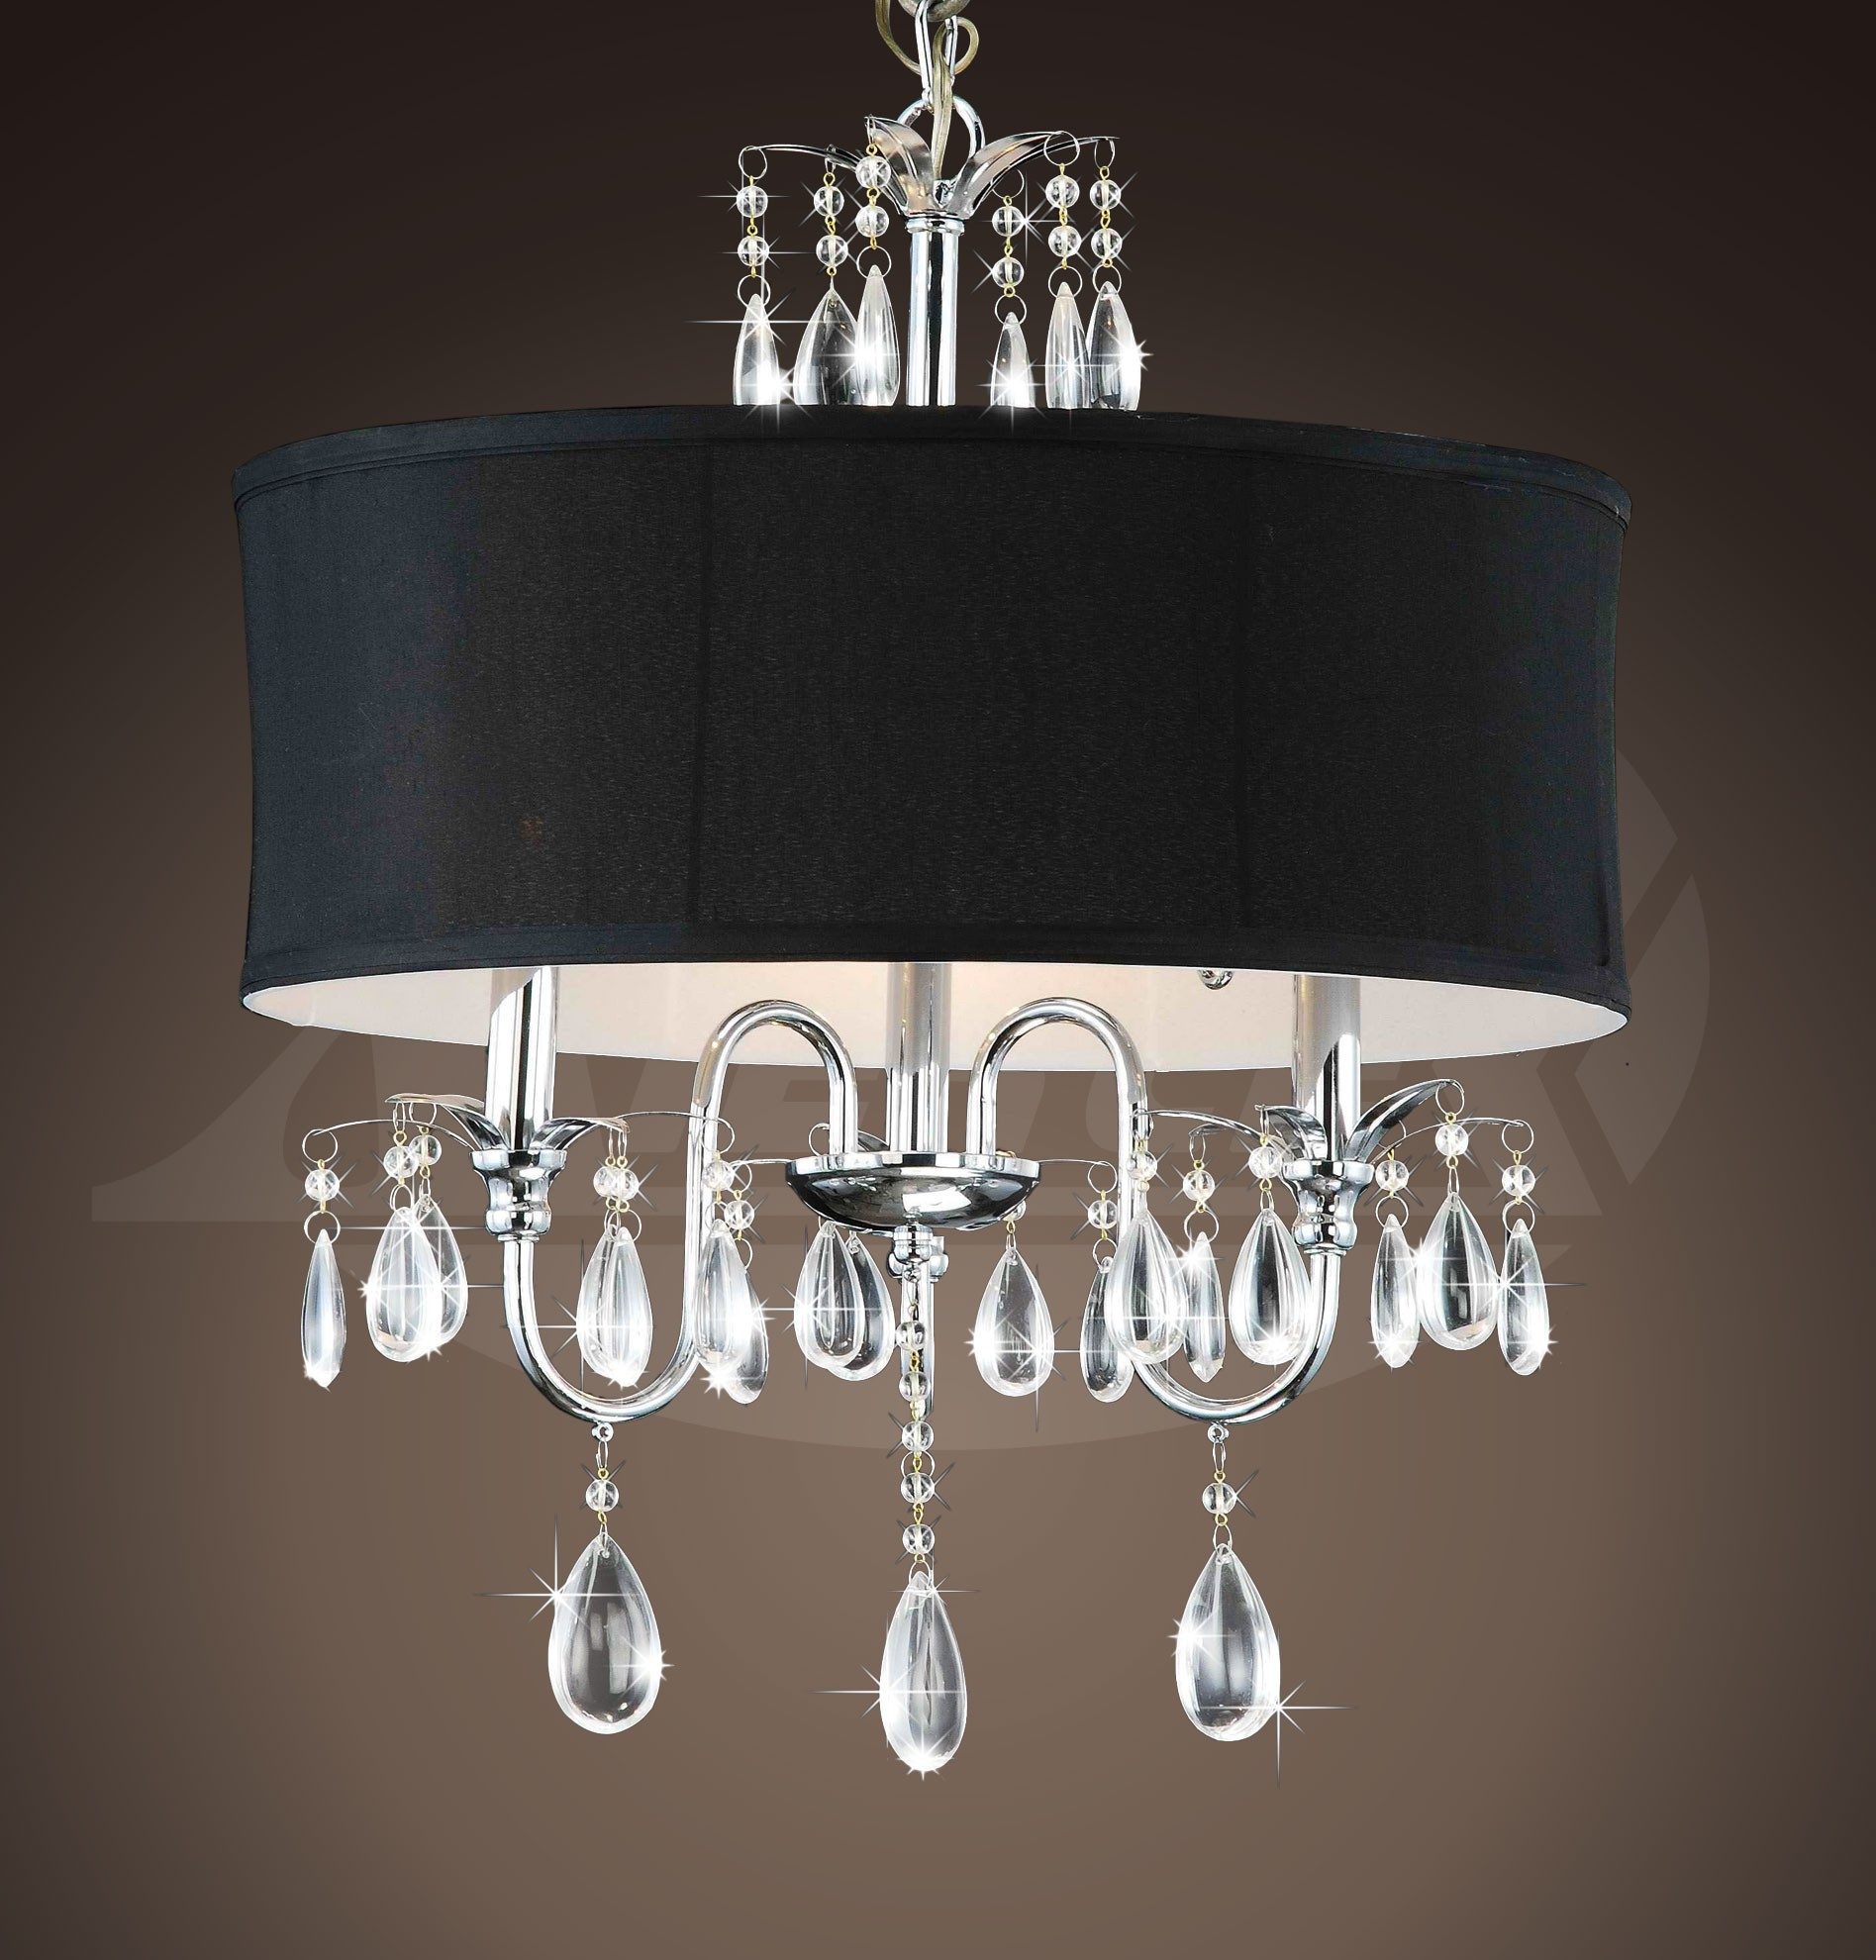 Sienna chrome 3 light black shade crystal chandelier 18w x 22 h sienna chrome 3 light black shade crystal chandelier 18w x 22 aloadofball Gallery